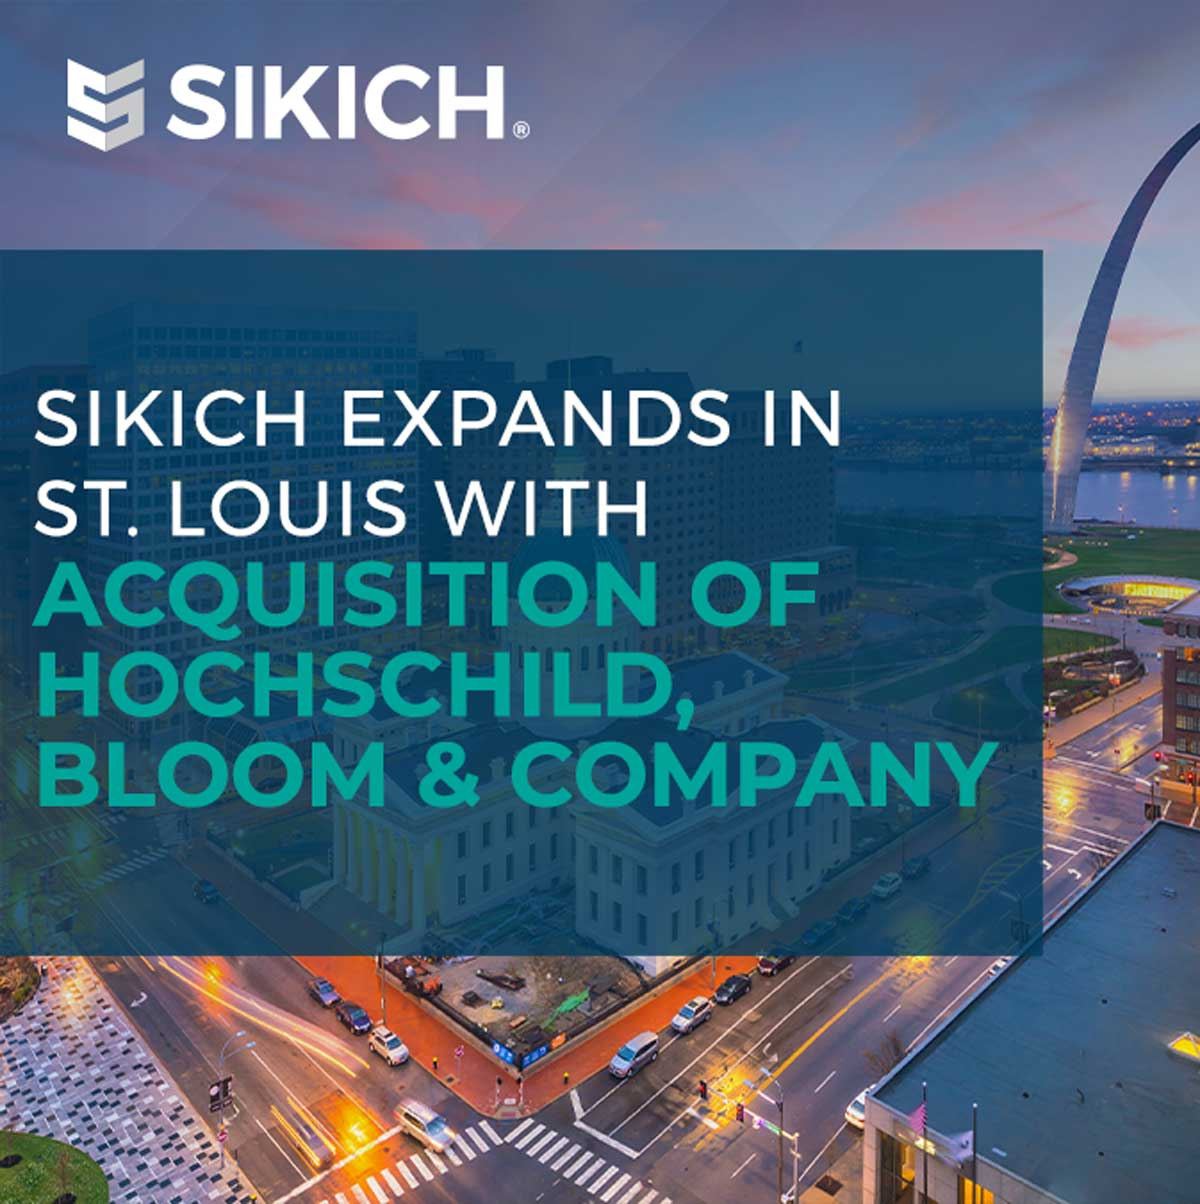 graphic with image of St. Louis and text that reads Sikich expands in St Louis with acquisition of Hochschild Bloom and Company